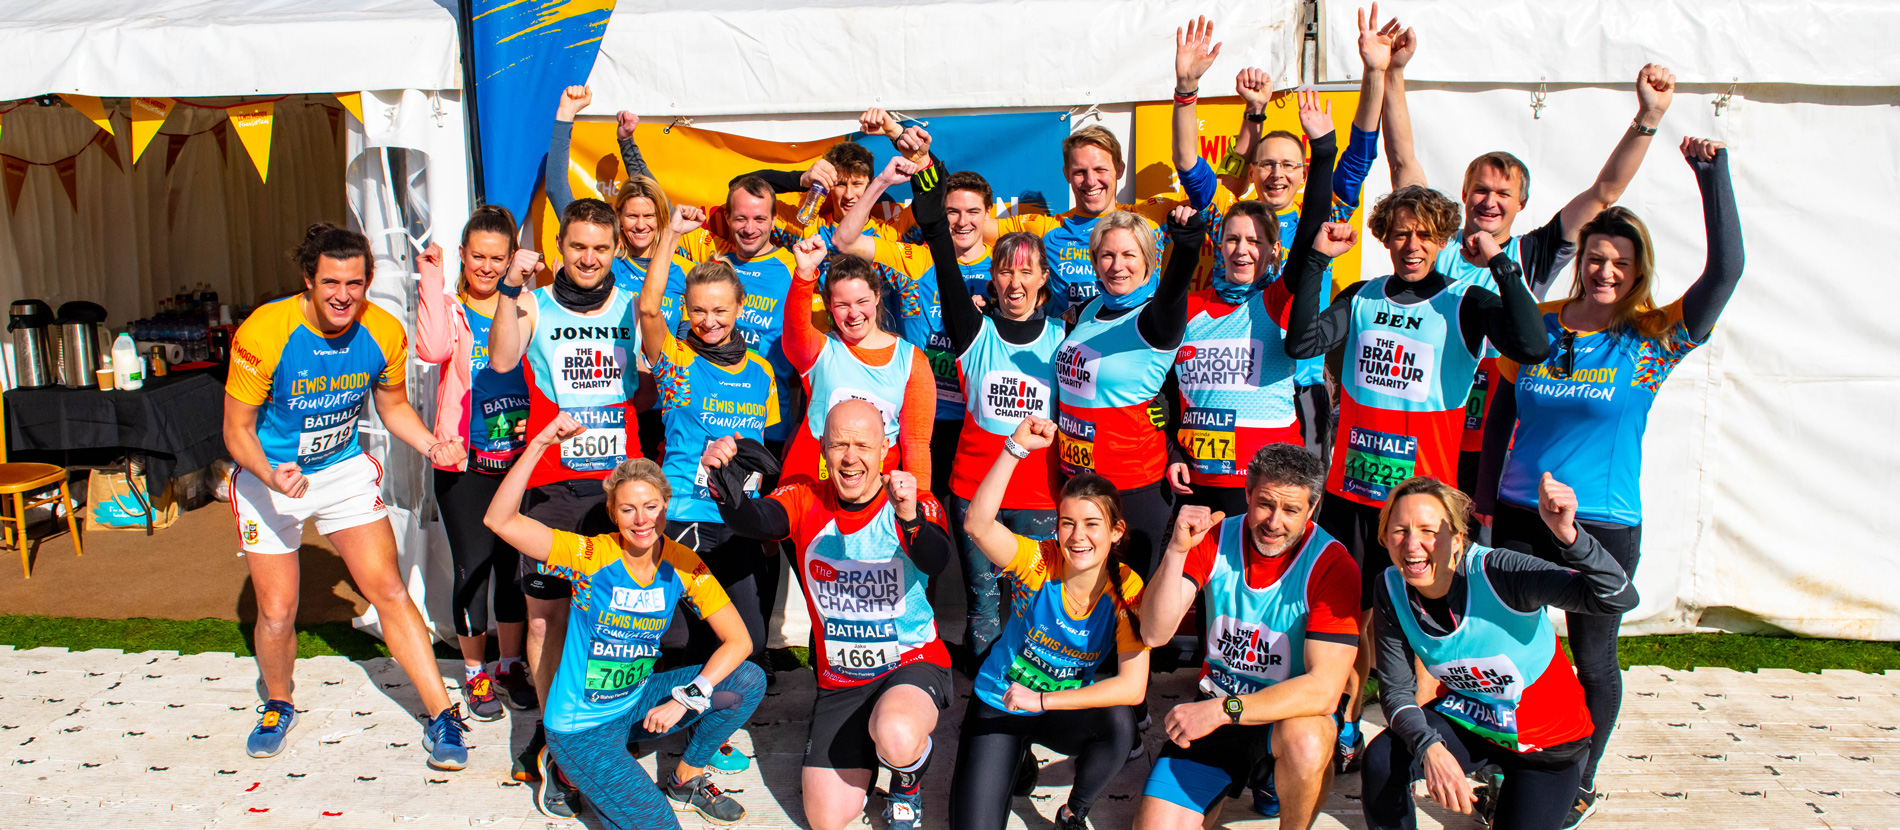 The Lewis Moody Foundation team celebrate after they beat the Bath Half Marathon 2019